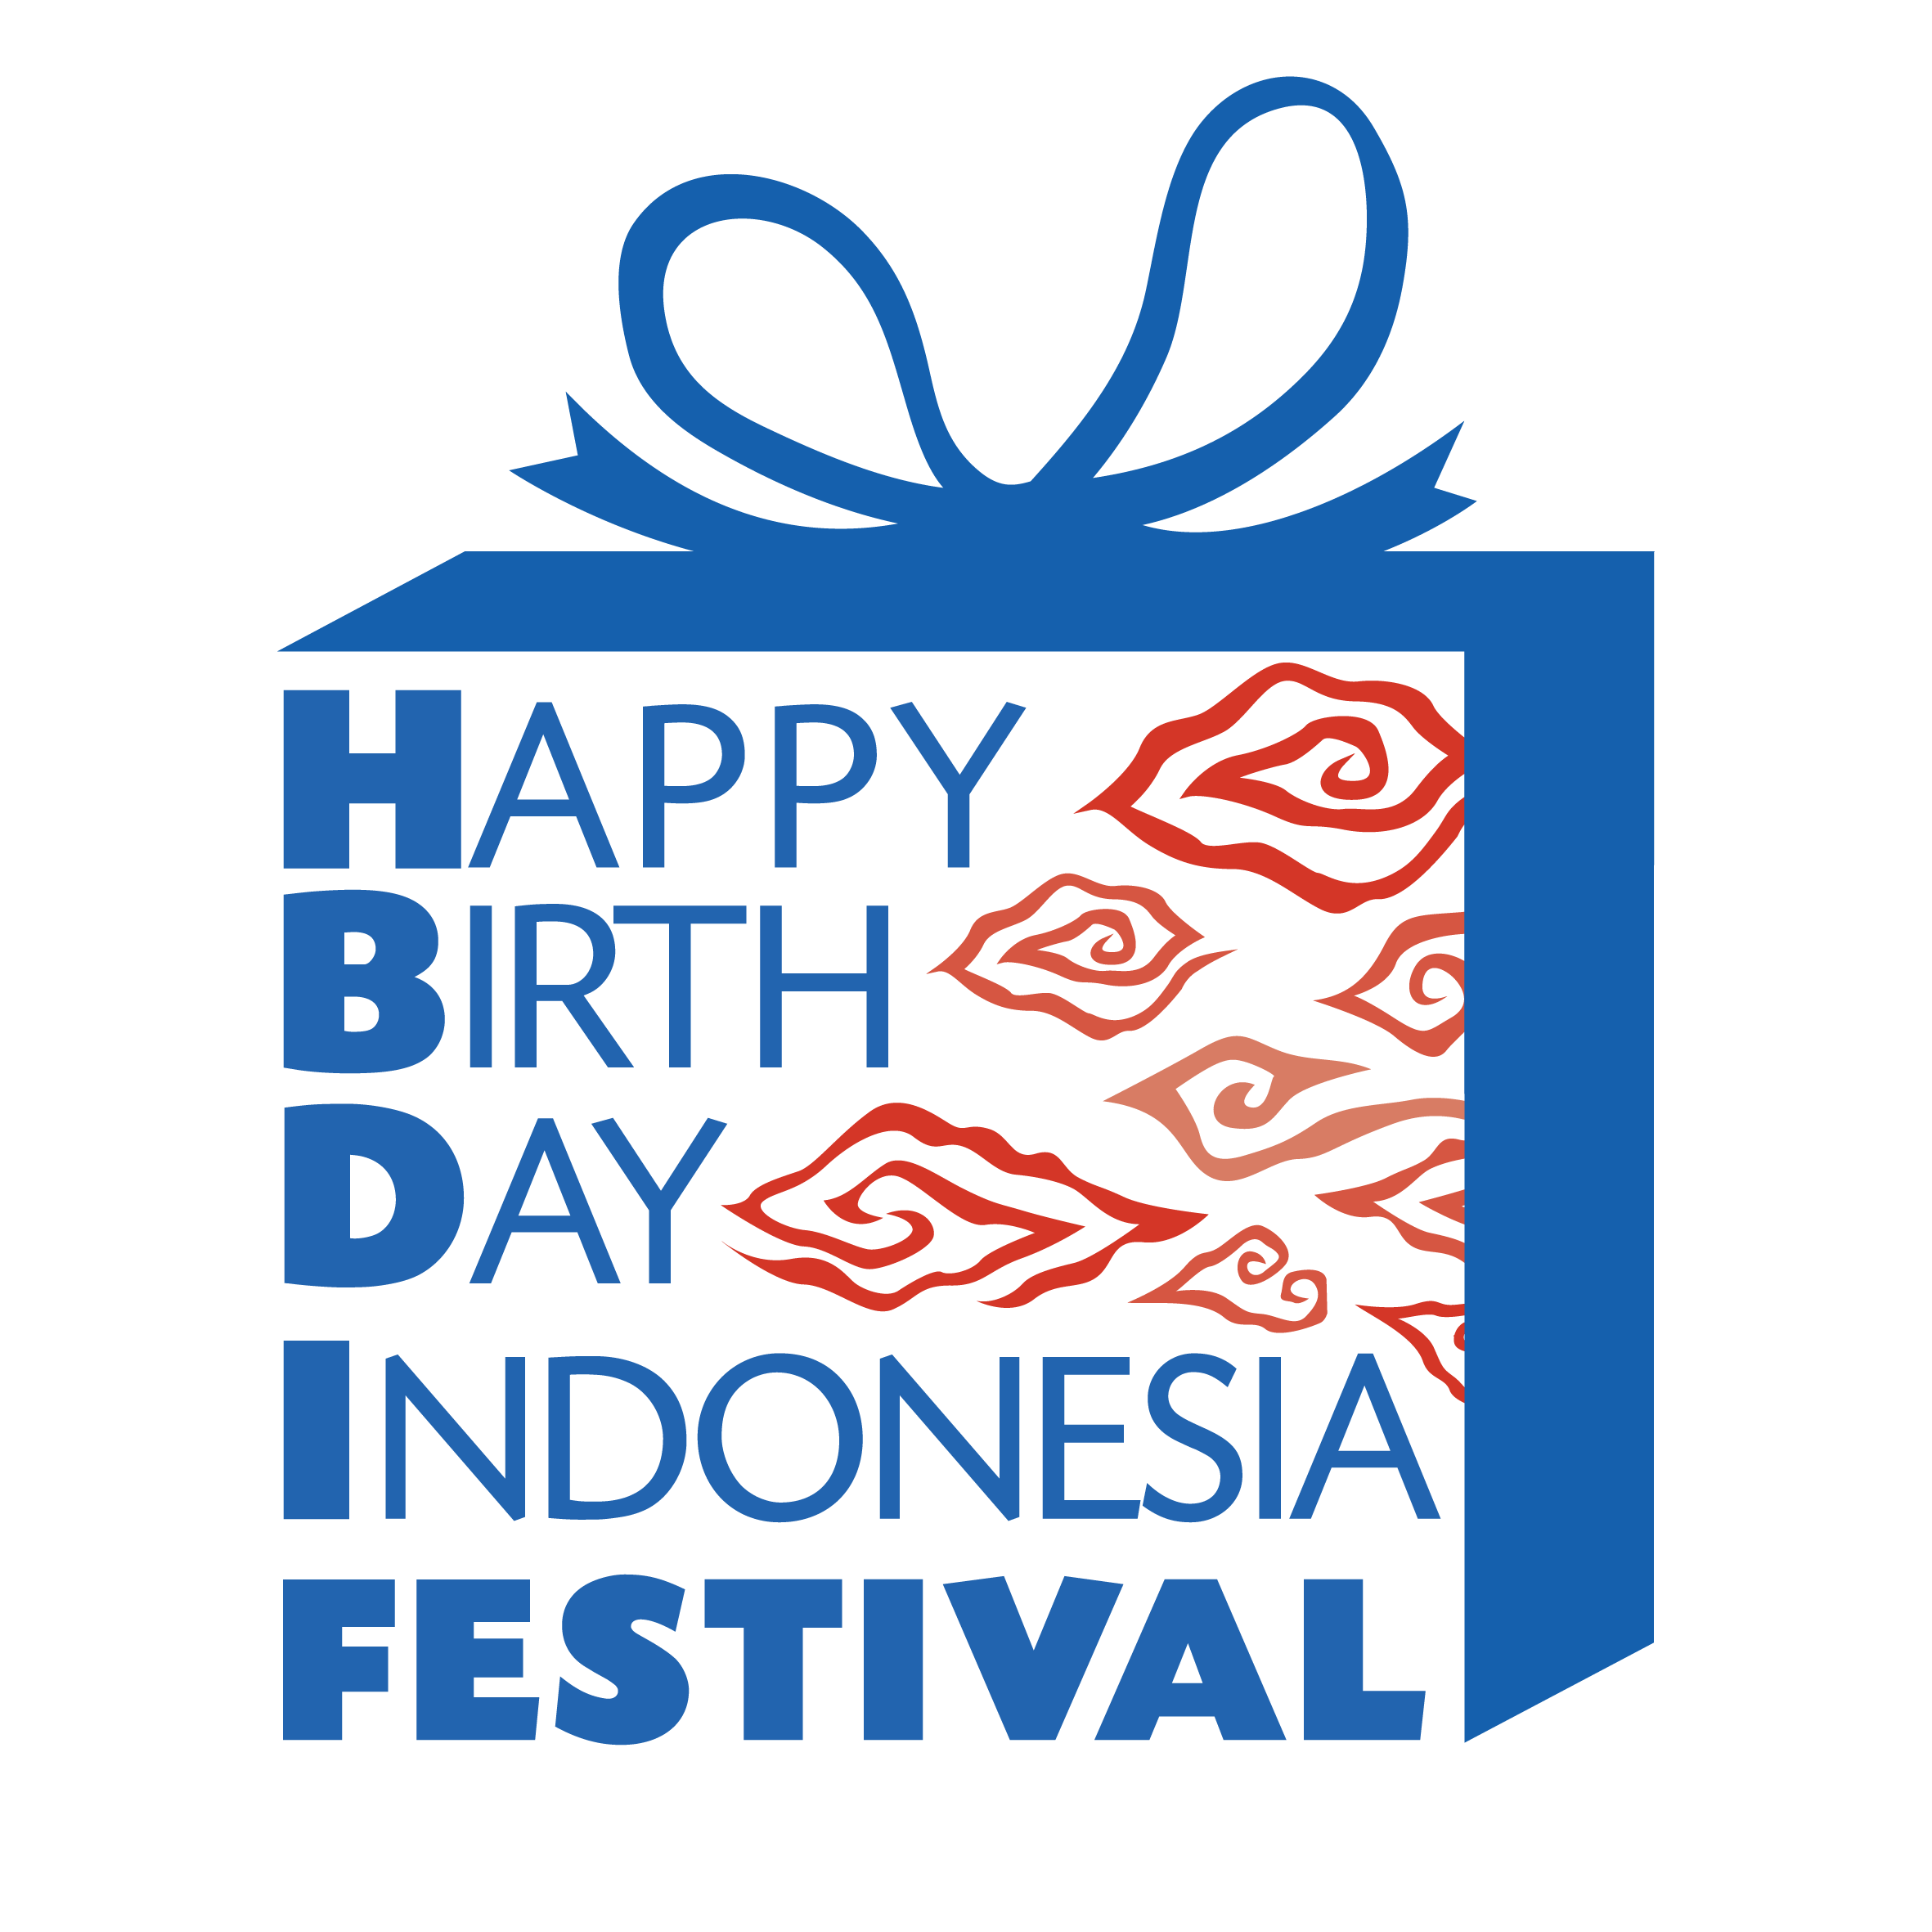 Happy Birthday Indonesia